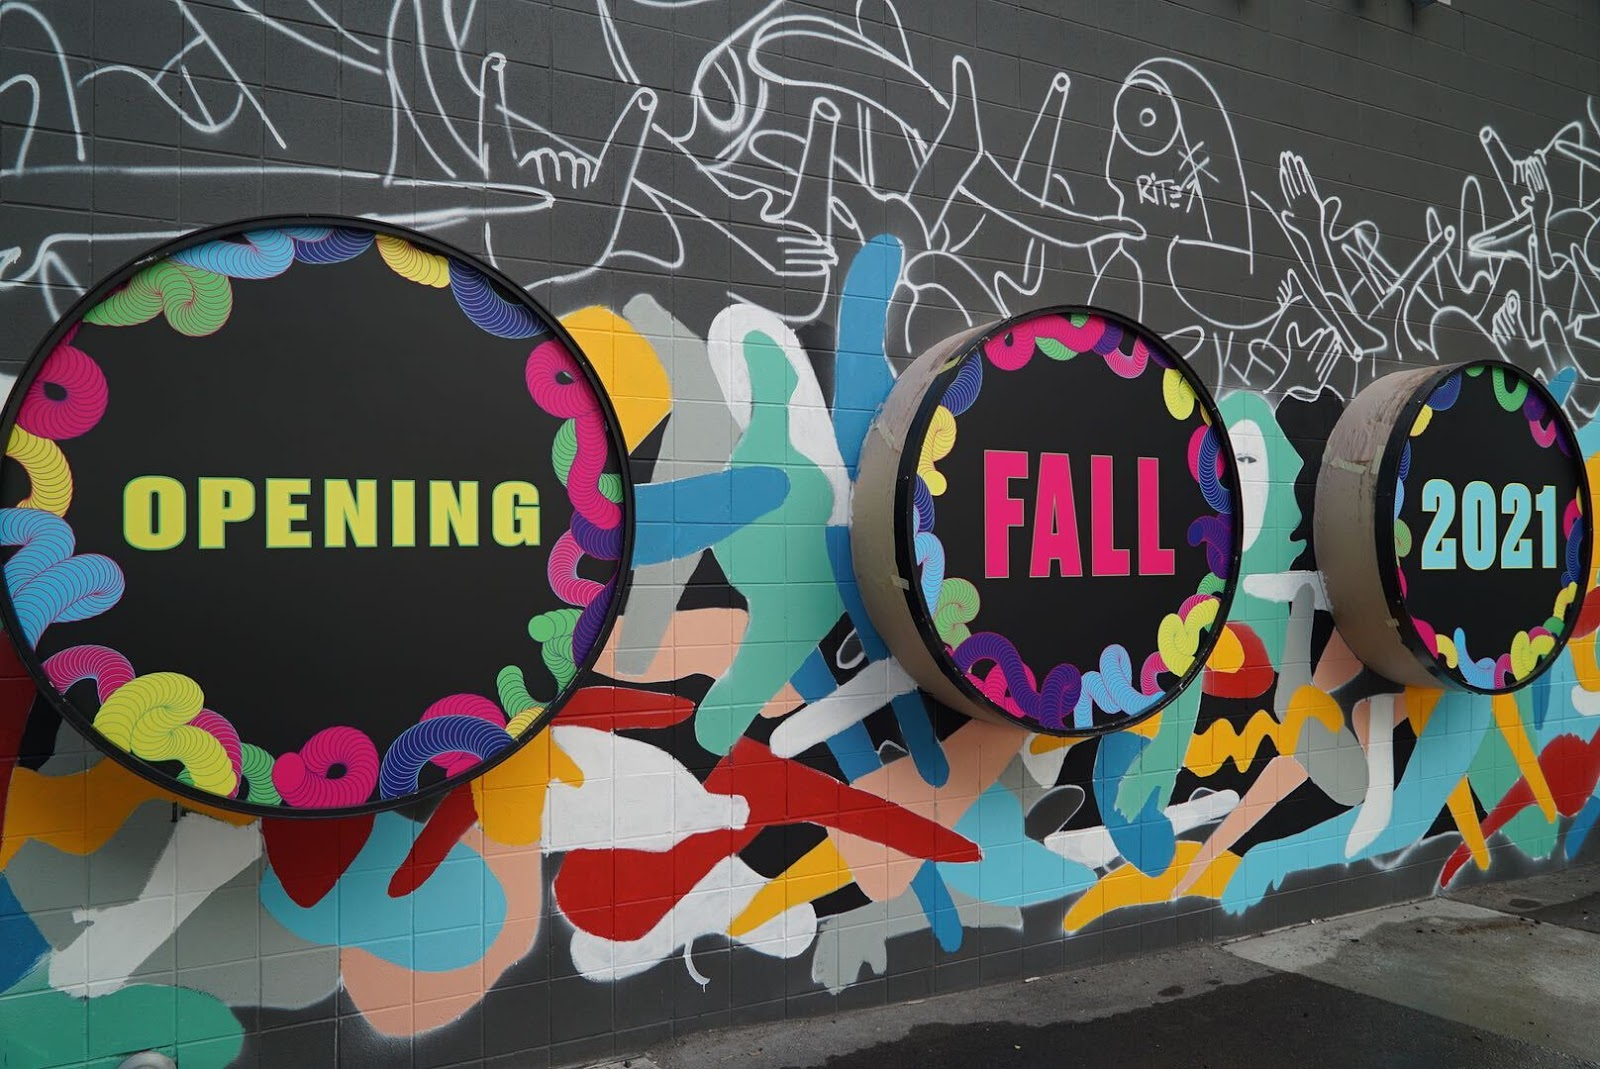 Meow Wolf Denver Opening Fall 2021 in art on a black wall